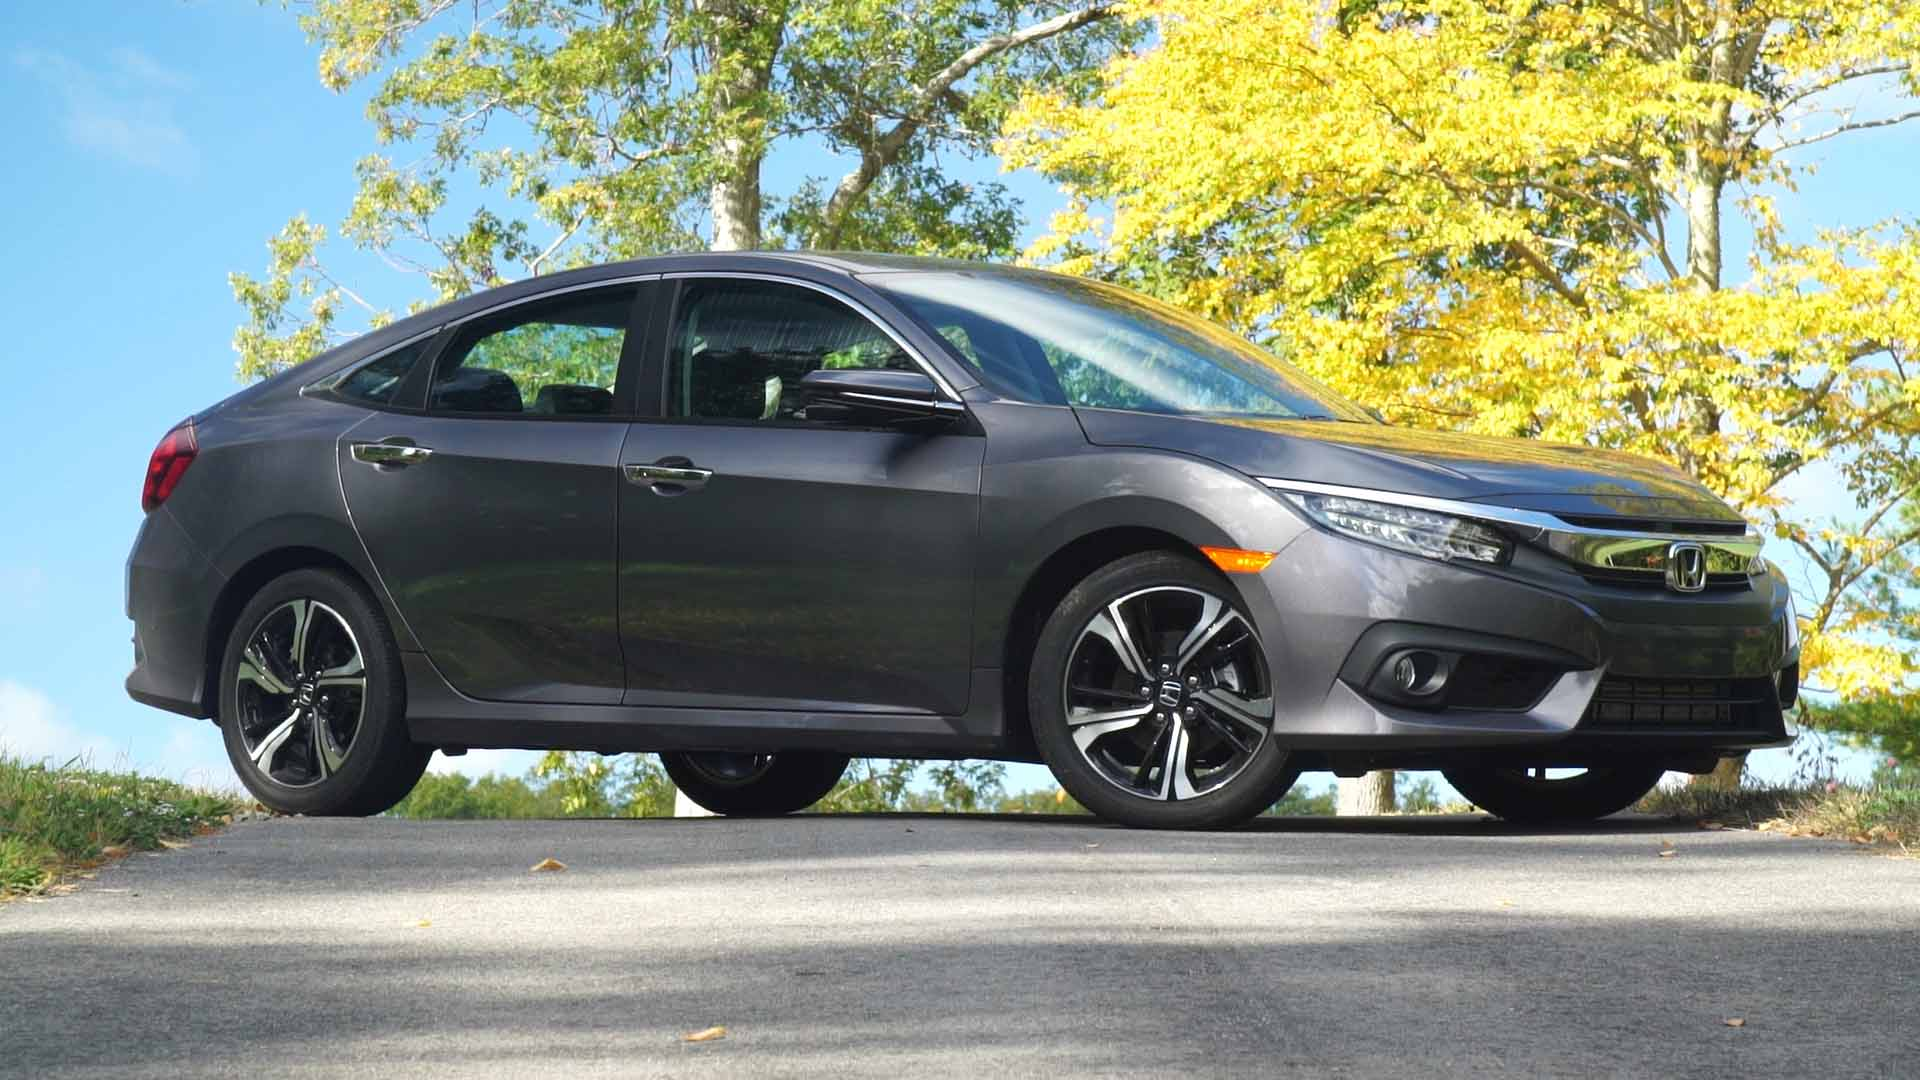 2016 Honda Civic Release Date >> 2016 Honda Civic Review Consumer Reports